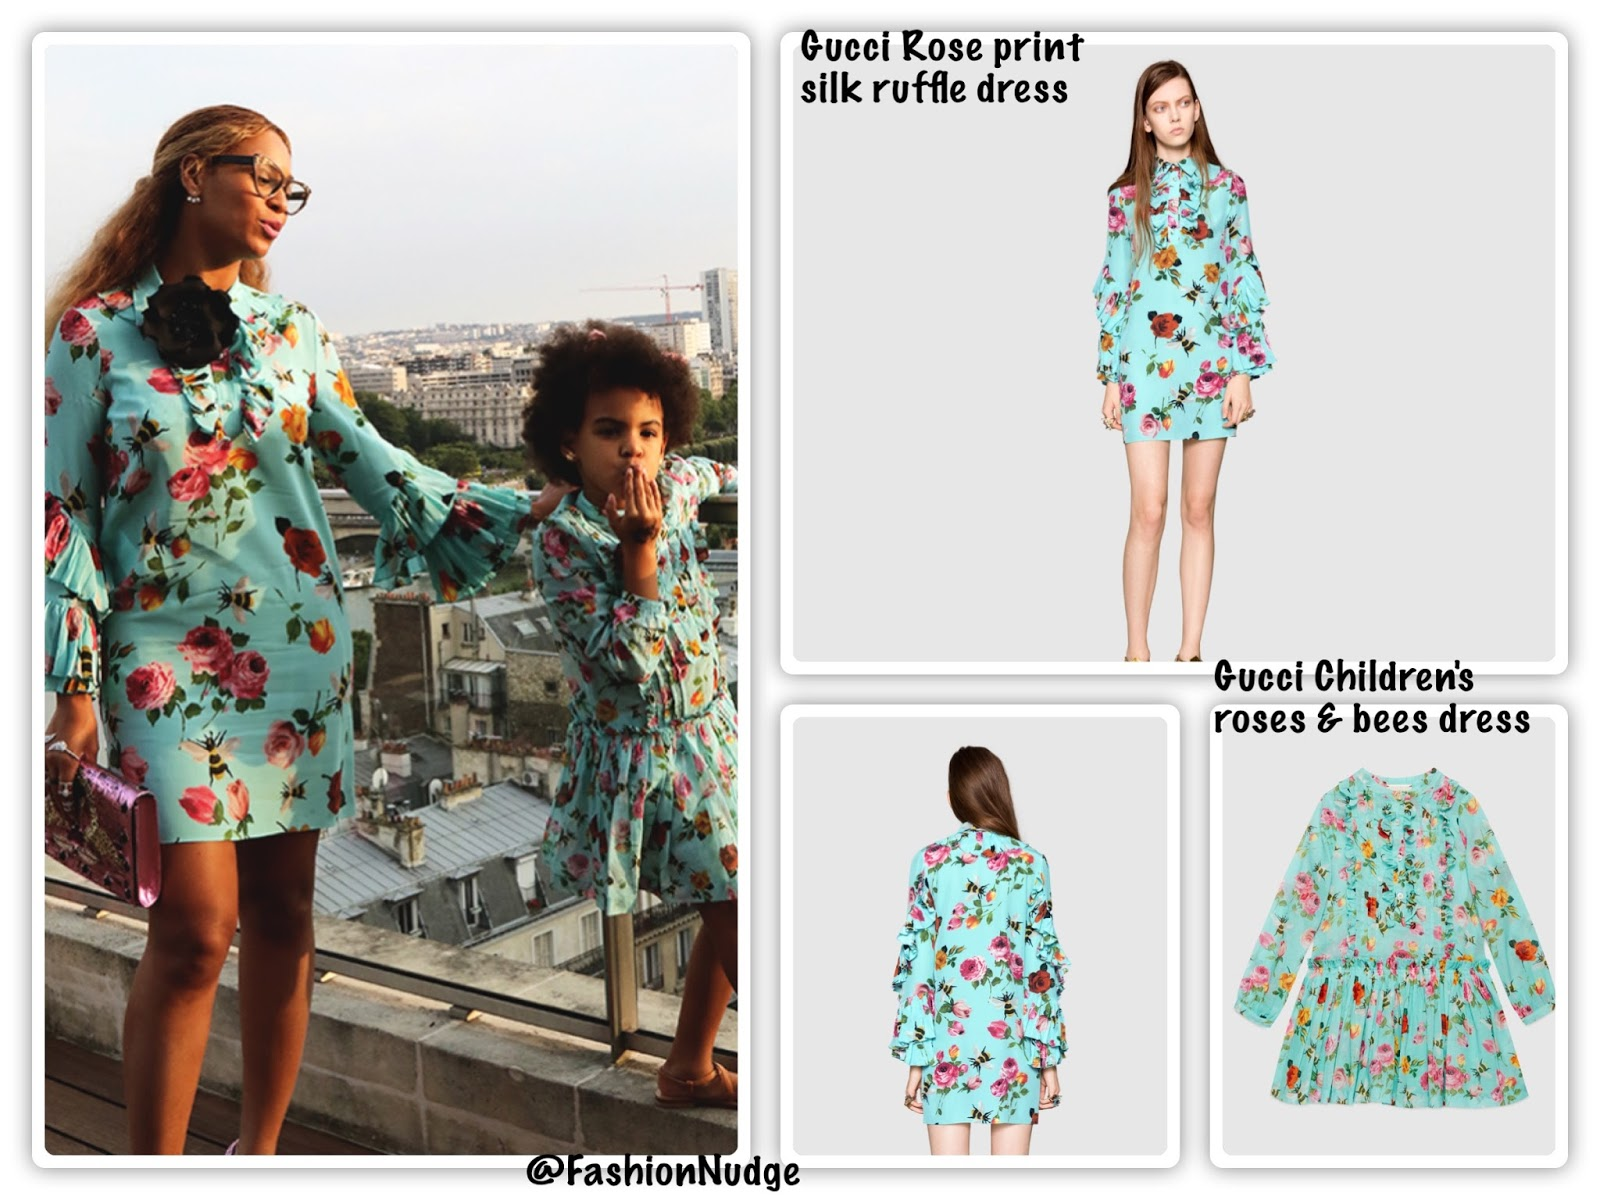 43186c4a9 Beyonce's Gucci Rose print silk ruffle dress is a splurge, buy at Gucci.  And the lovely Blue Ivy is in Gucci Children's roses and bees dress, buy  HERE.